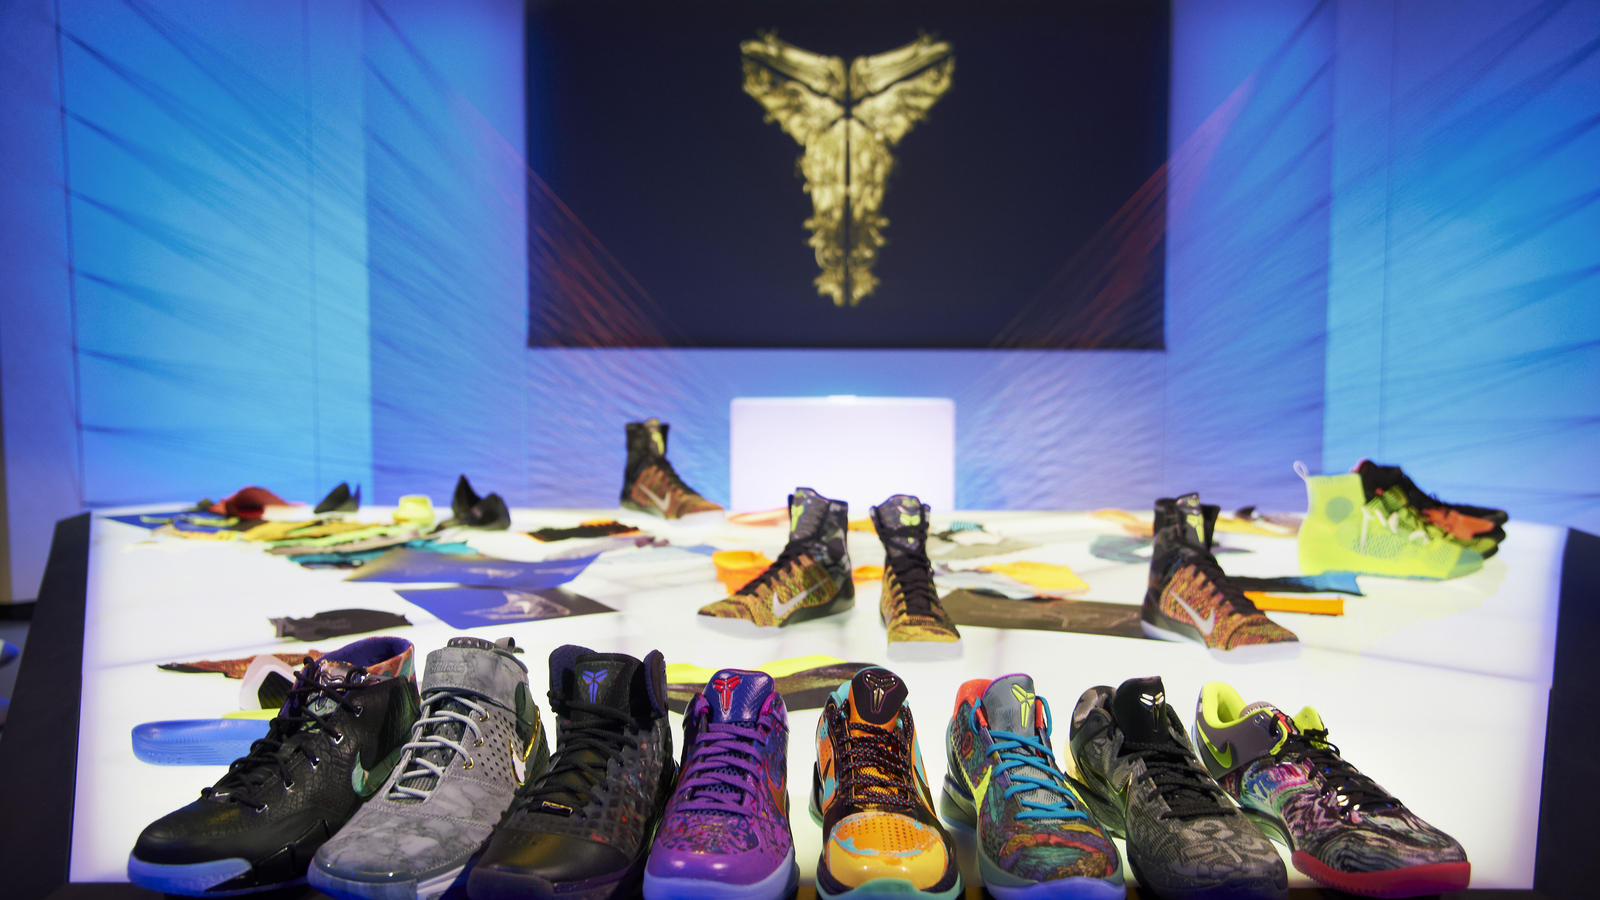 INTRODUCING THE KOBE PRELUDE PACK